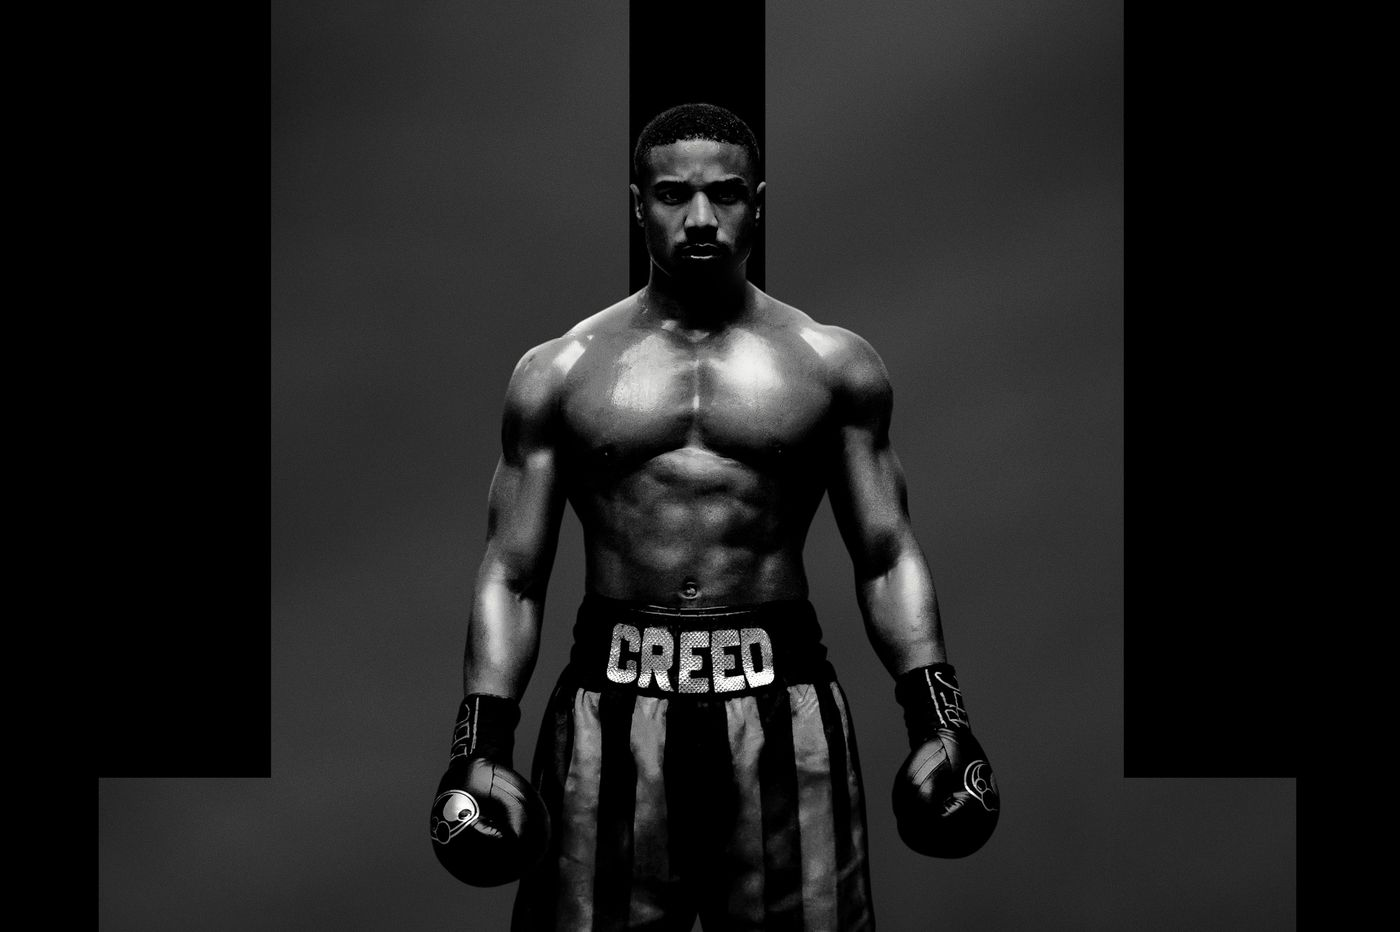 Watch: First trailer for 'Creed II' released